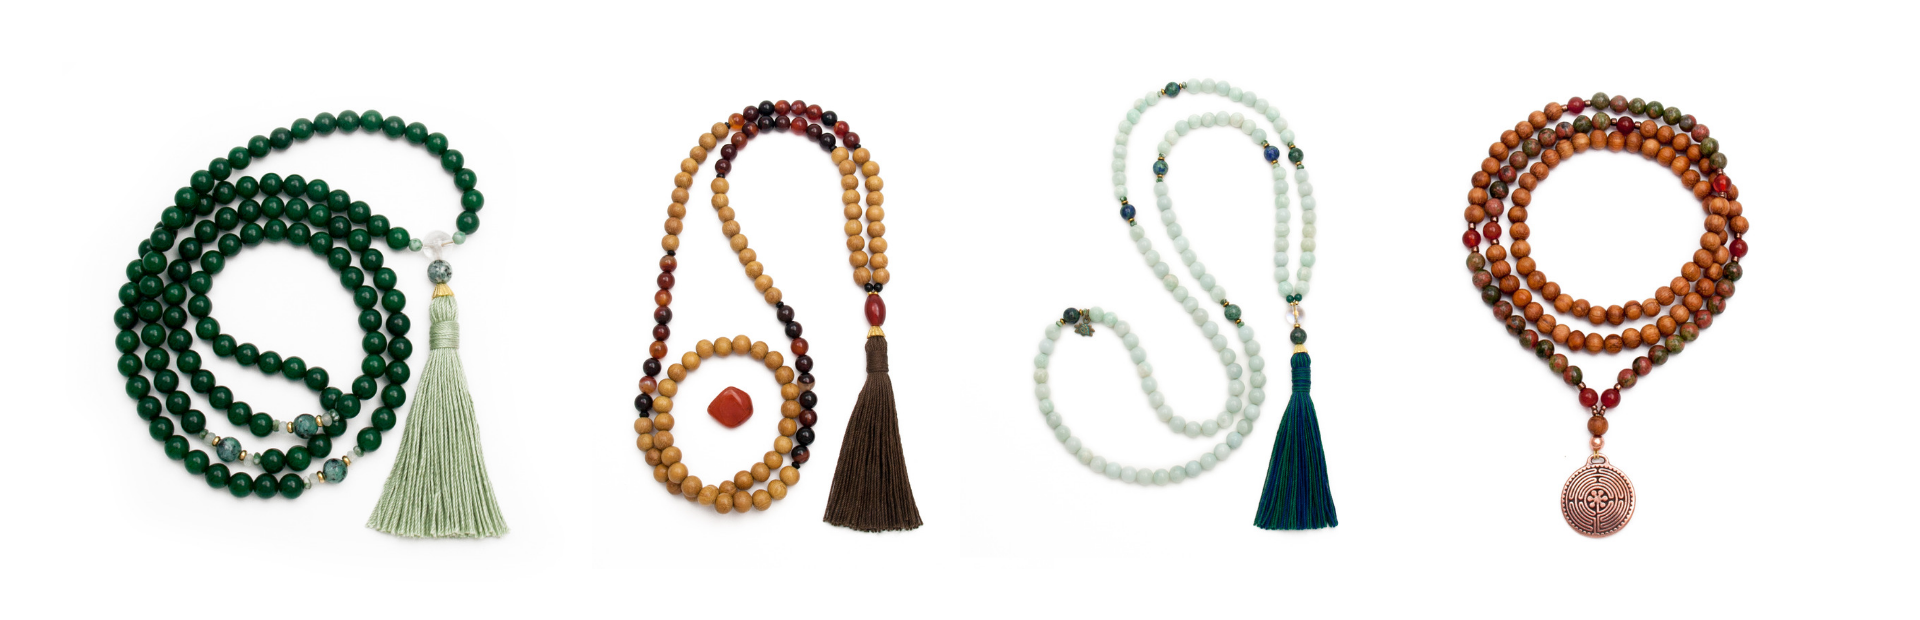 Different Types of Mala Beads